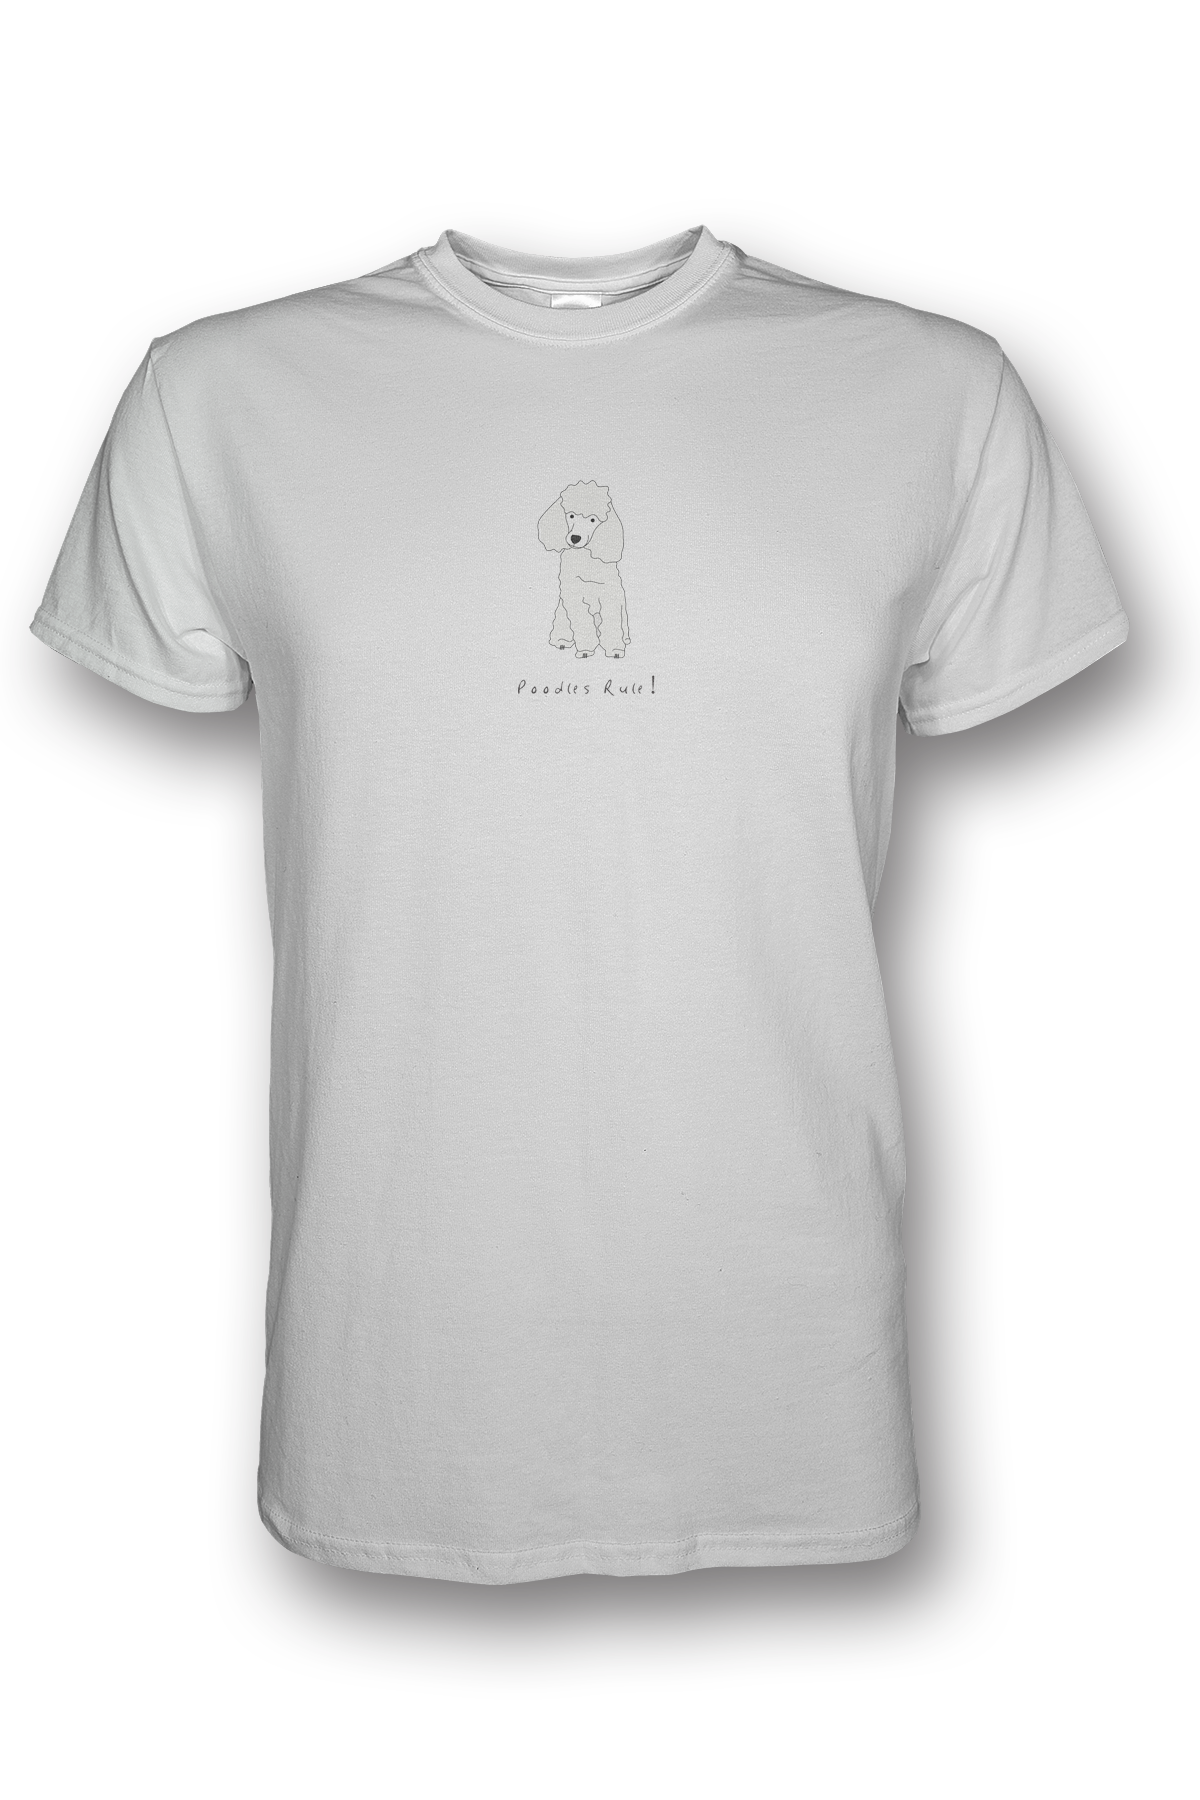 Mens Crew Neck T-Shirt - Poodles Rule! White